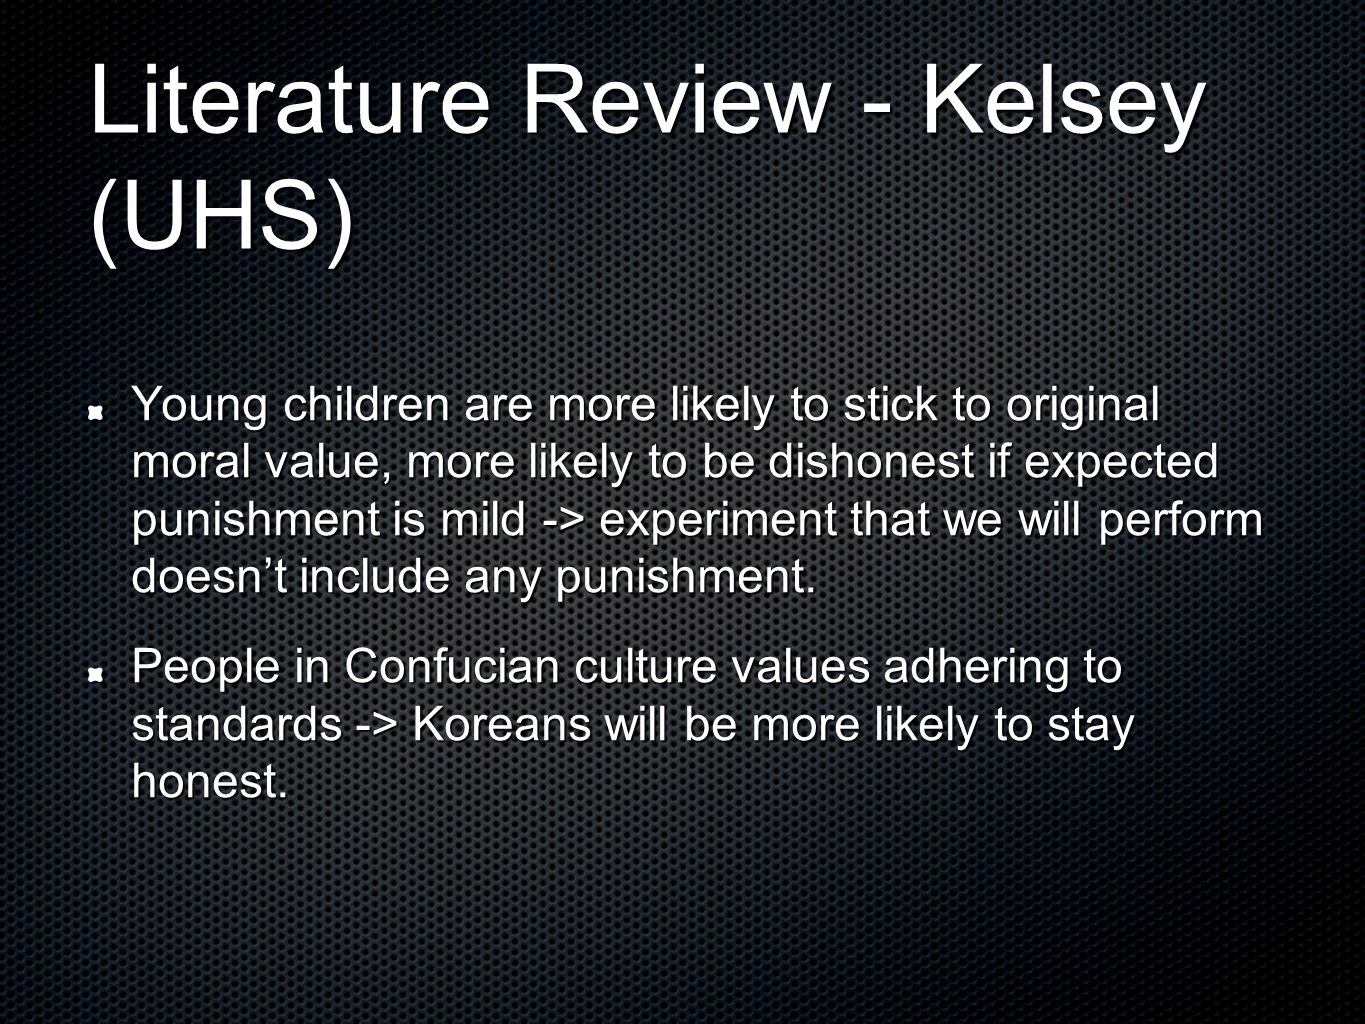 Literature Review - Kelsey (UHS) Young children are more likely to stick to original moral value, more likely to be dishonest if expected punishment is mild -> experiment that we will perform doesn't include any punishment.